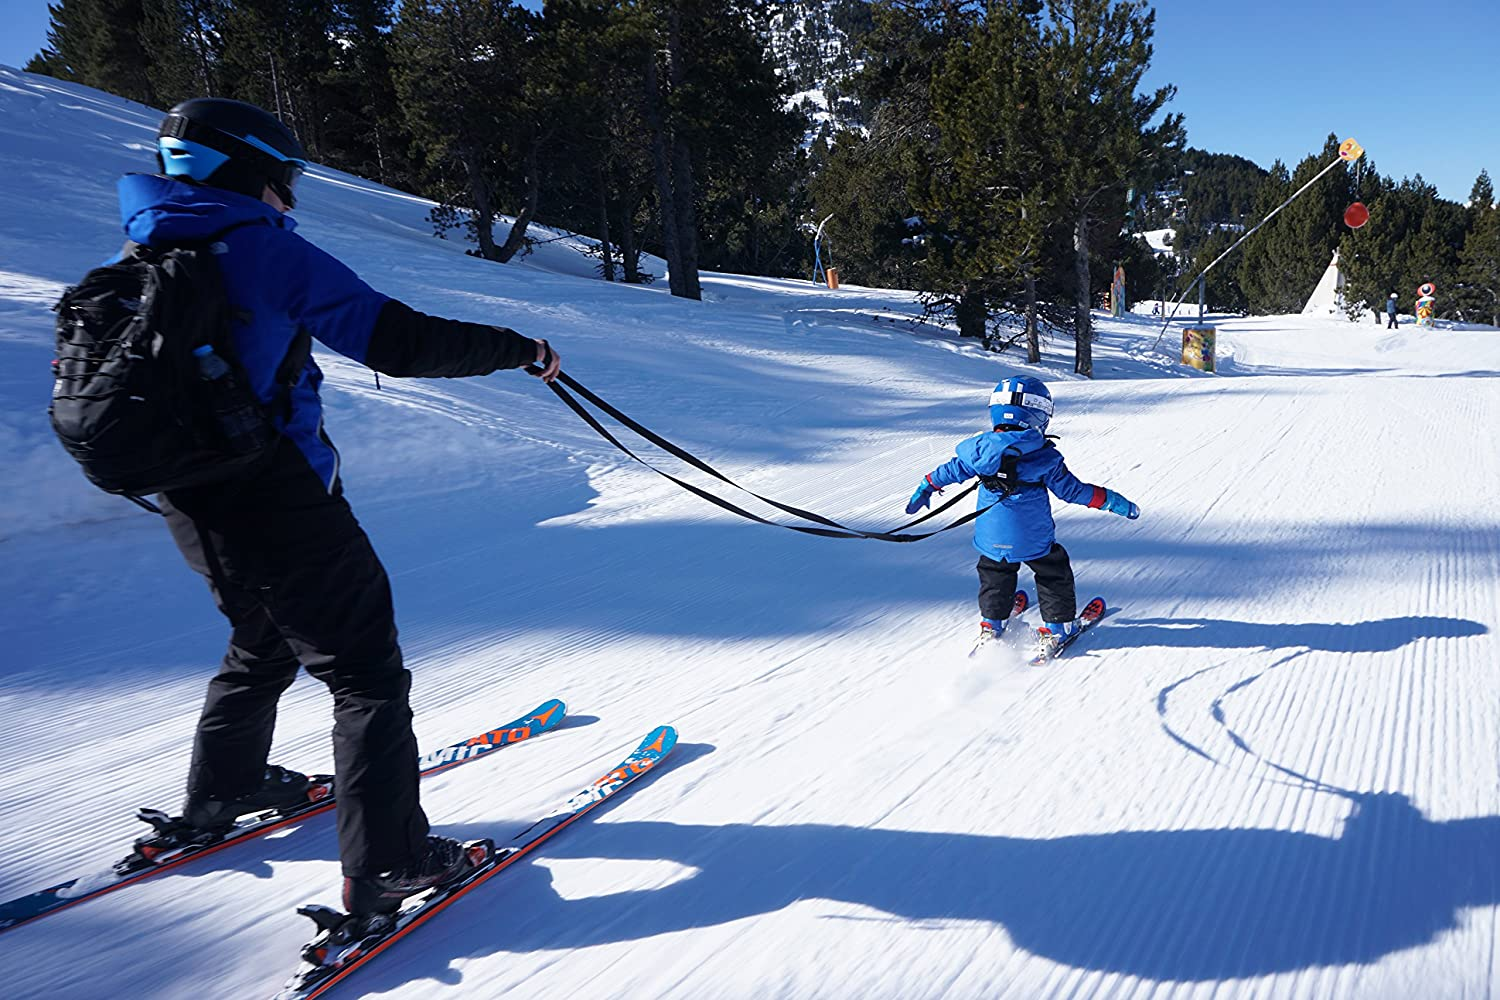 KUTNIK - SAFETY HARNESS, LEARNING TO SKI AND WALKING